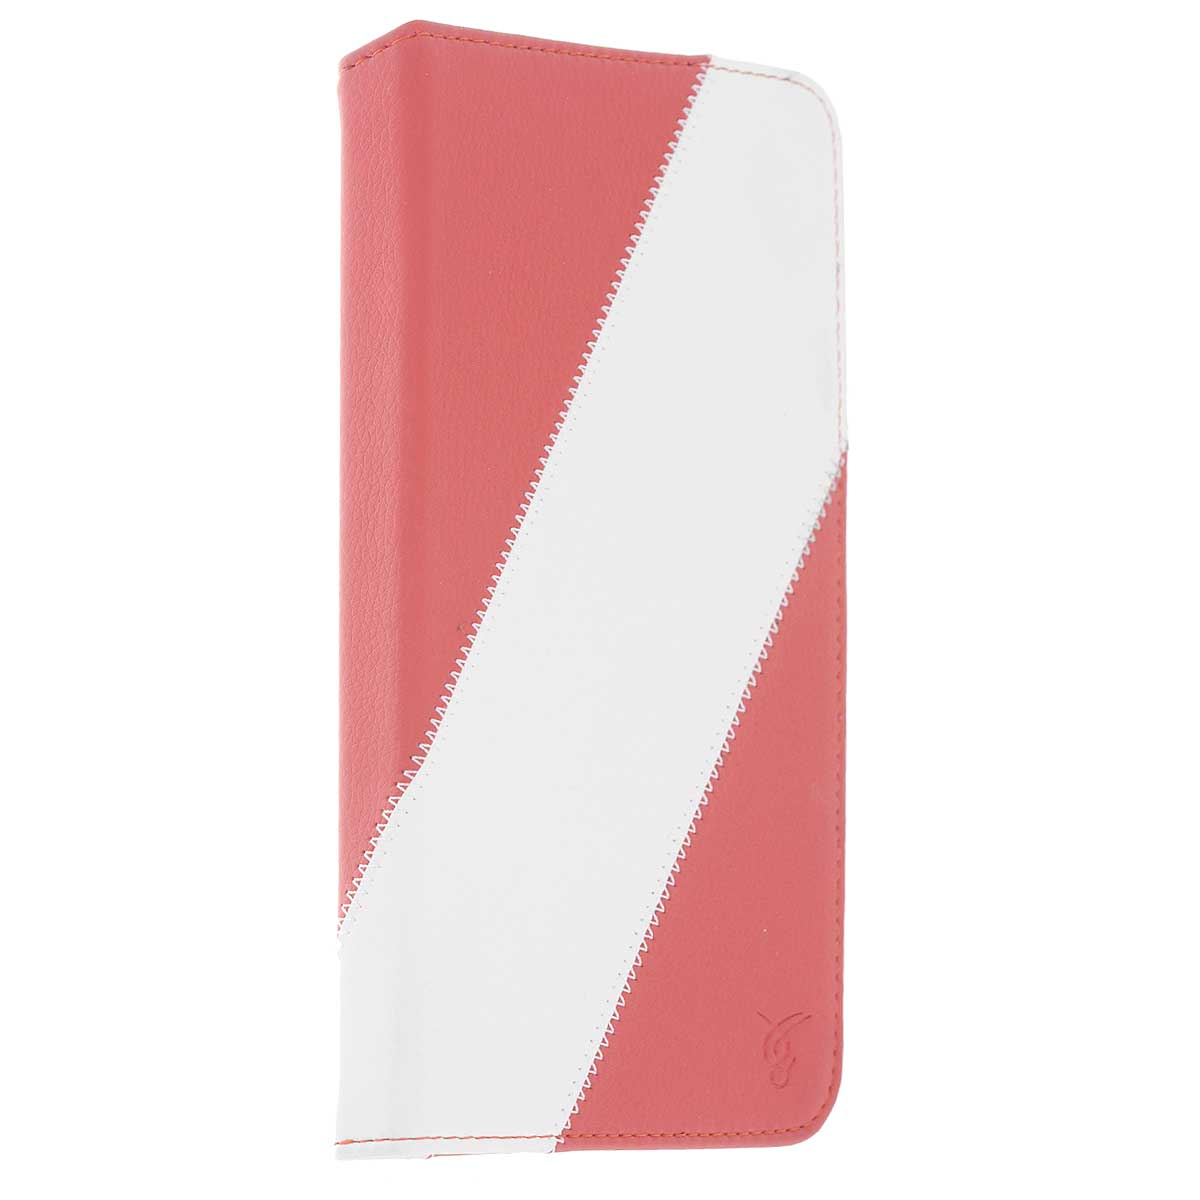 Vivacase Fantasy чехол для Asus MeMO Pad 7, Red White (VAS-ASMPF04-rw) maple sticky memo pads 30pcs